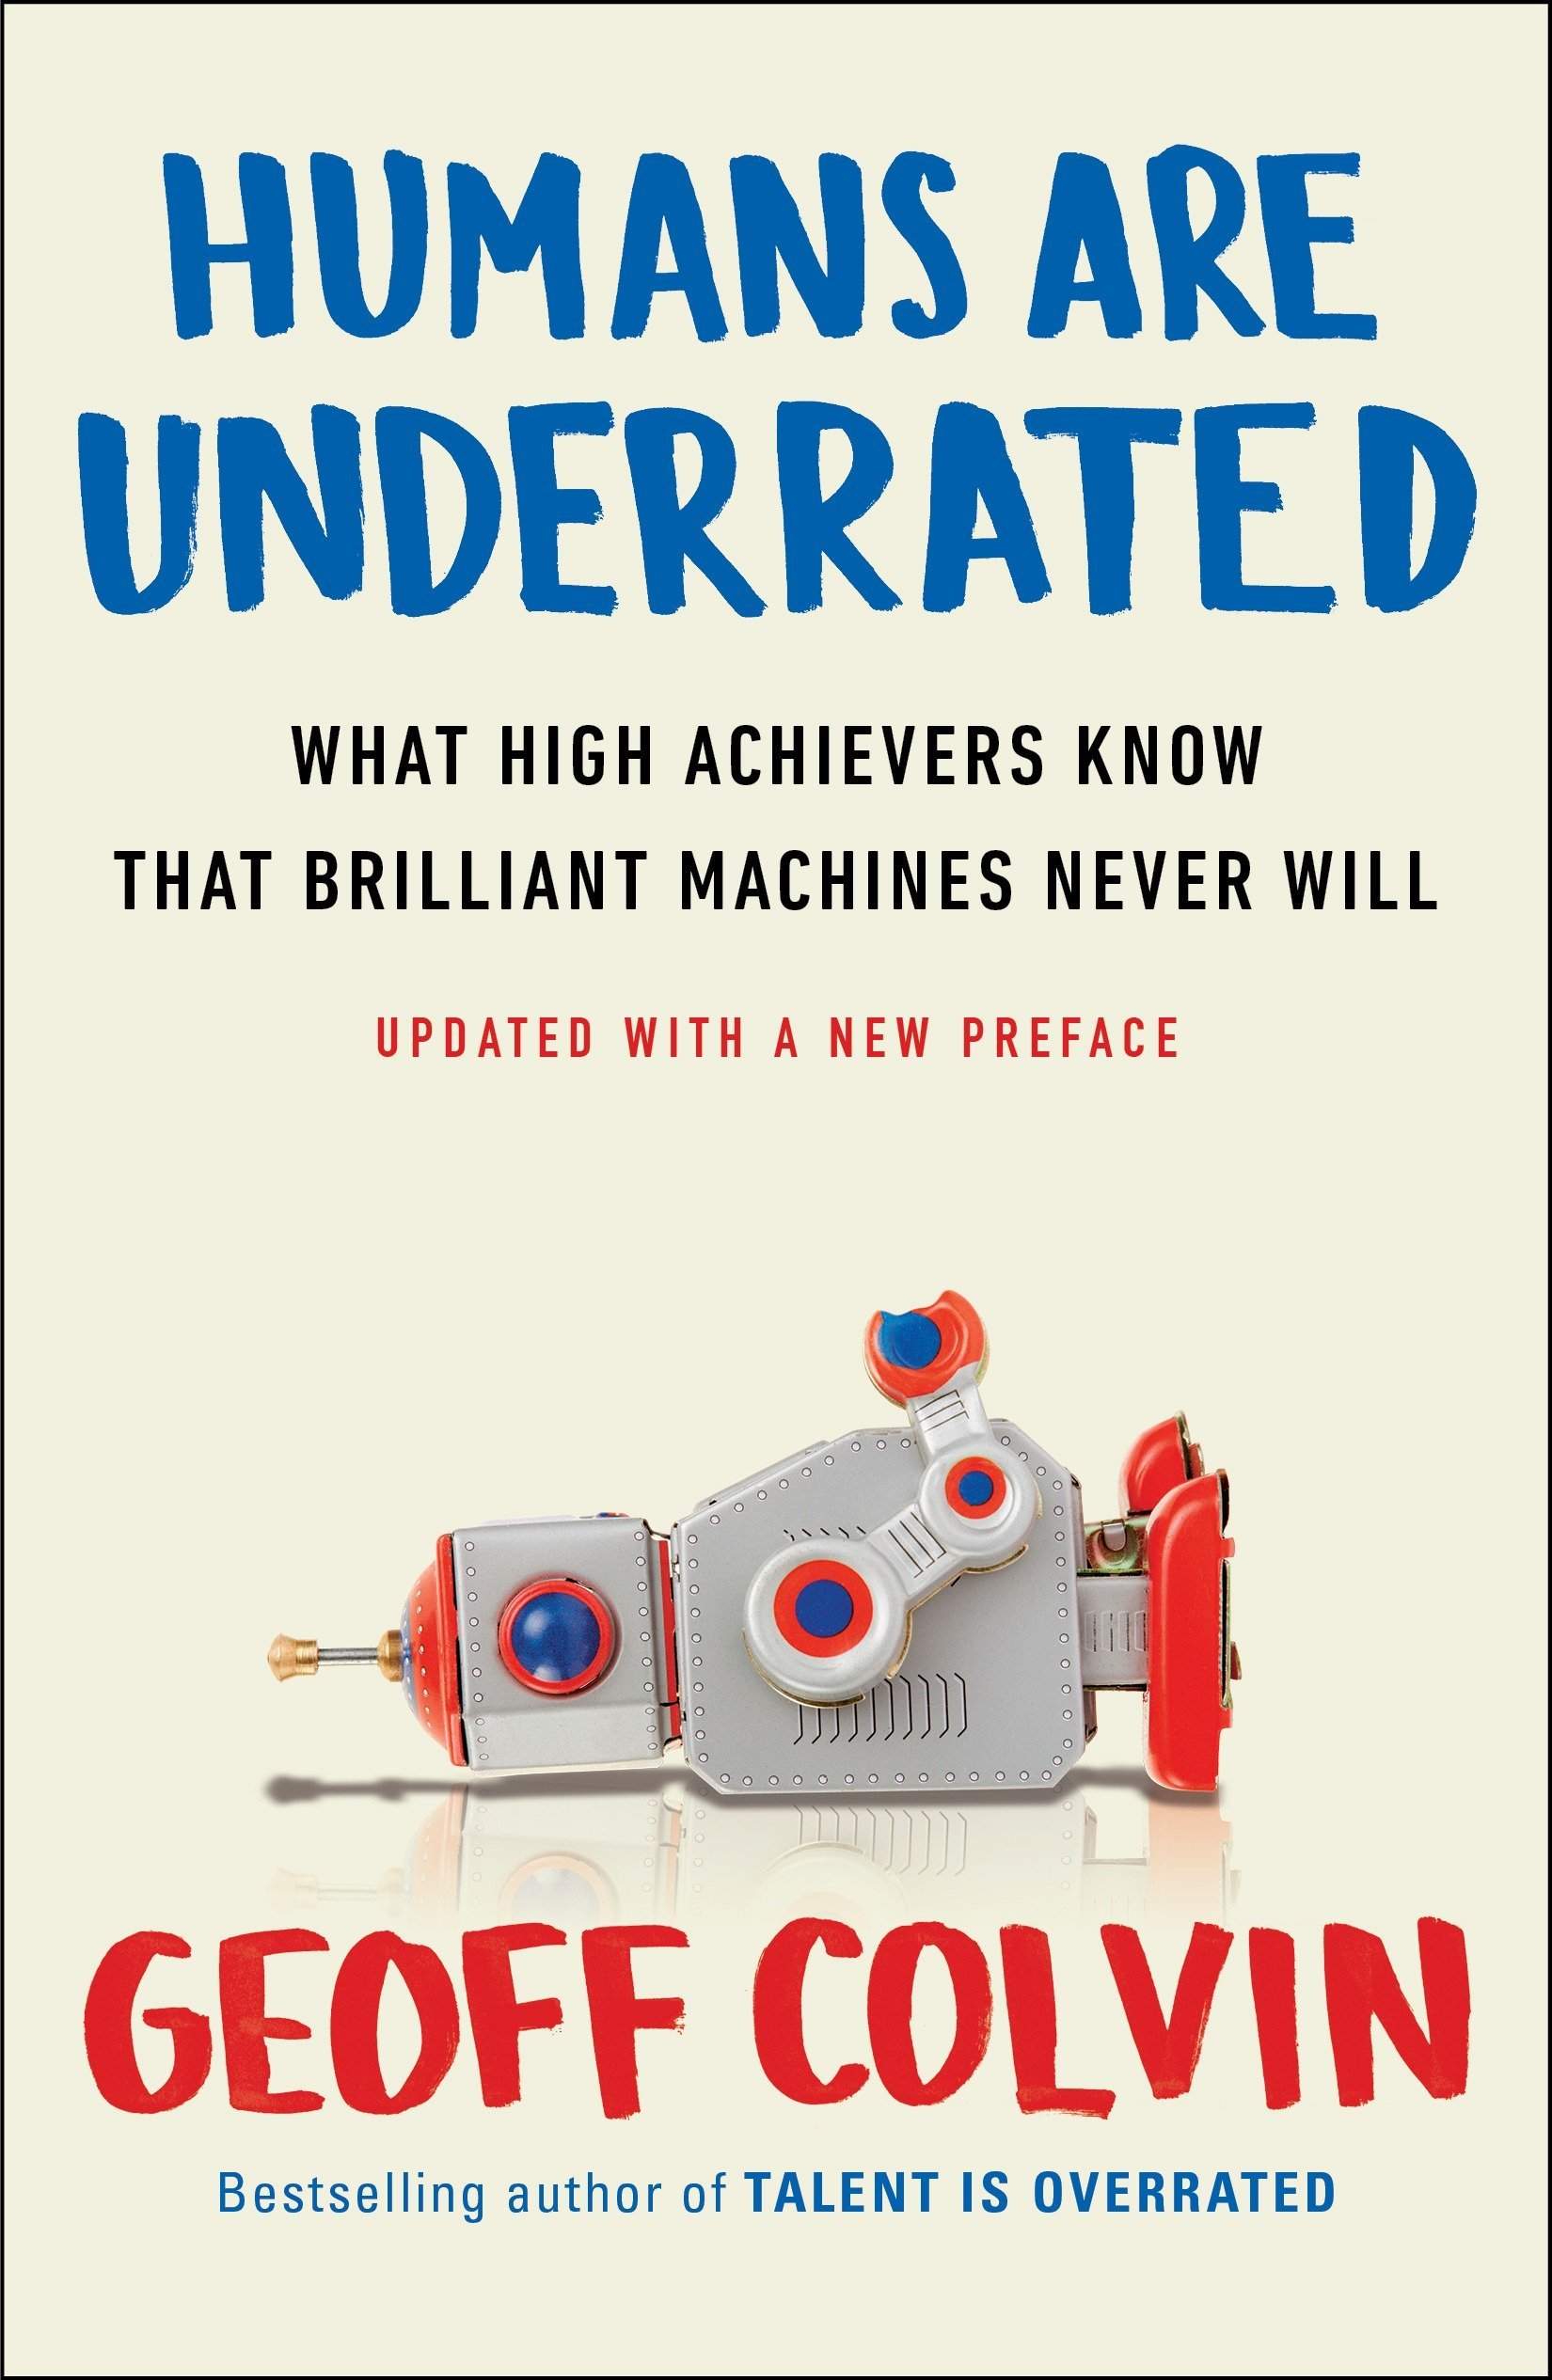 Amazon.com: Humans Are Underrated: What High Achievers Know That ...